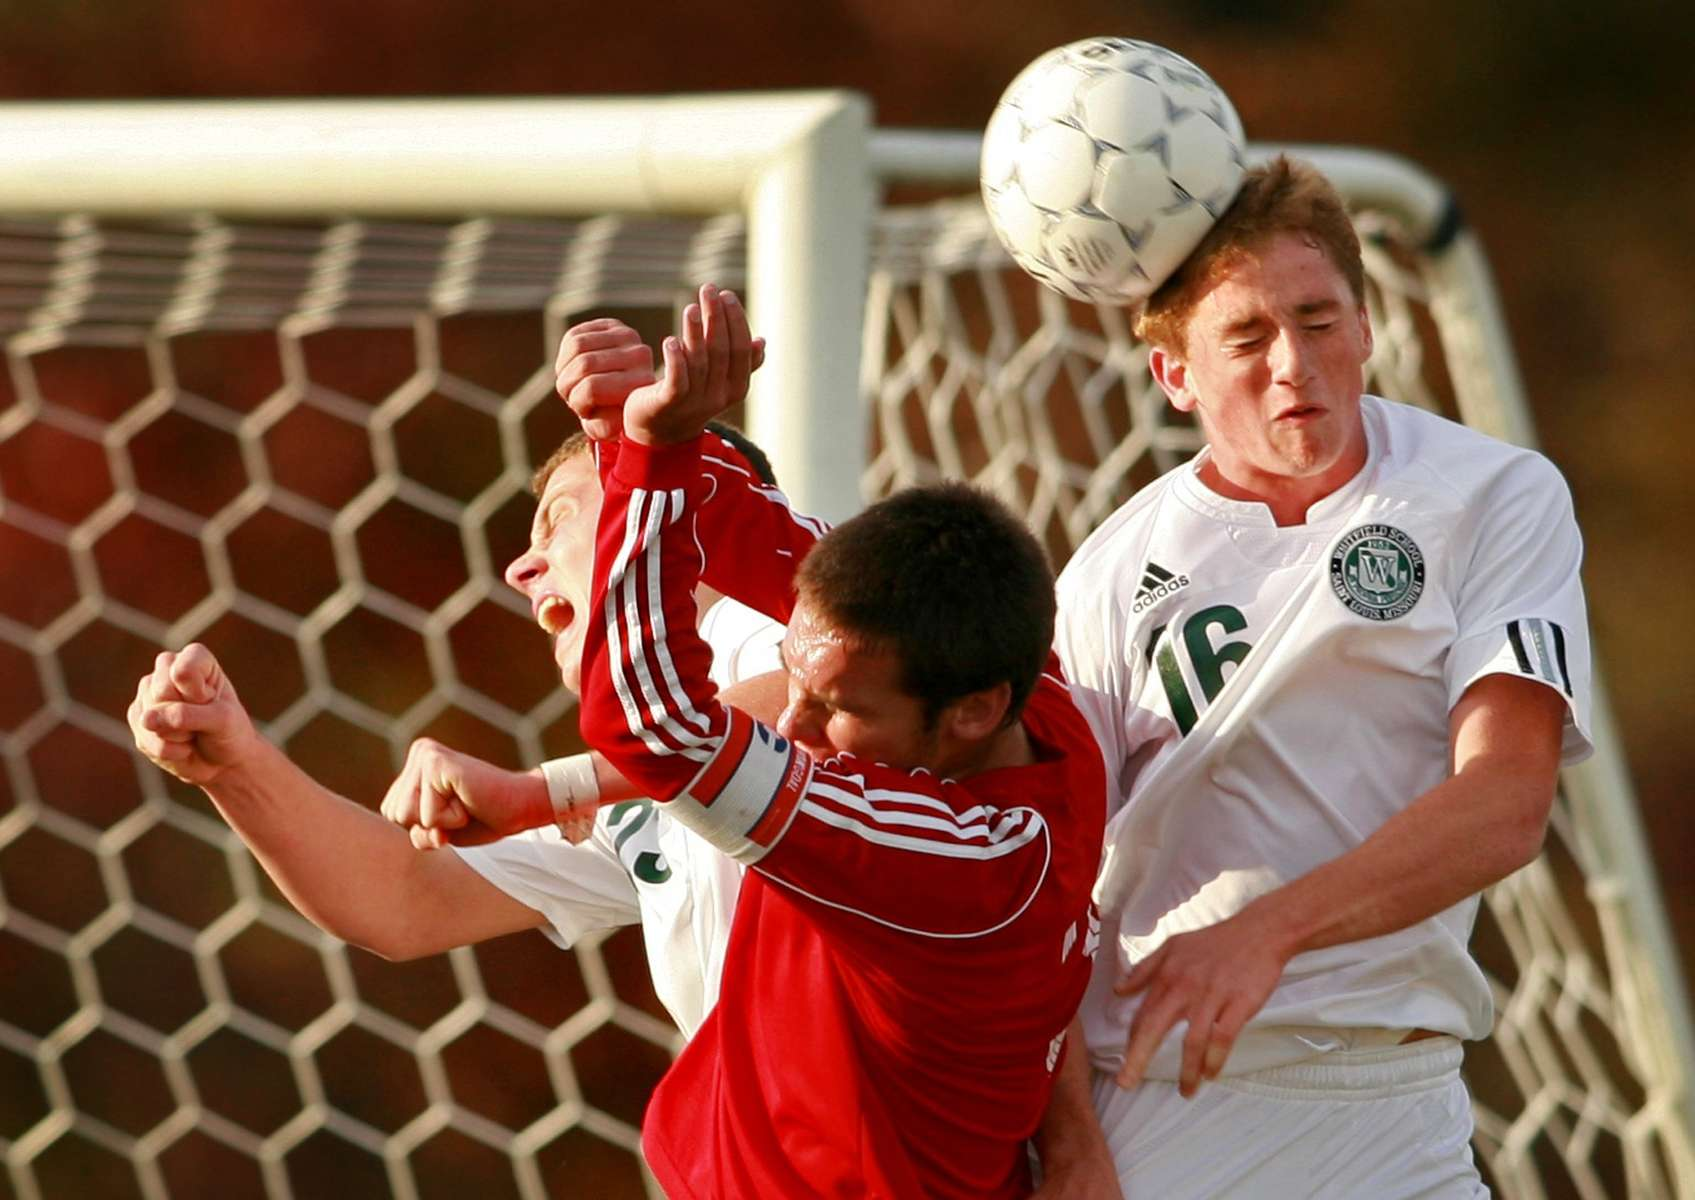 Saturday November 10, 2007--Whitfield's Michael Jordan, left, and Matt Chabot clear a ball intended for Pembroke Hill's Will Wurster during the second half of the MSHSAA class 1 boys soccer championship game on Saturday in Fenton.  Whitfield won the game 2-1.David Carson | Post-Dispatch